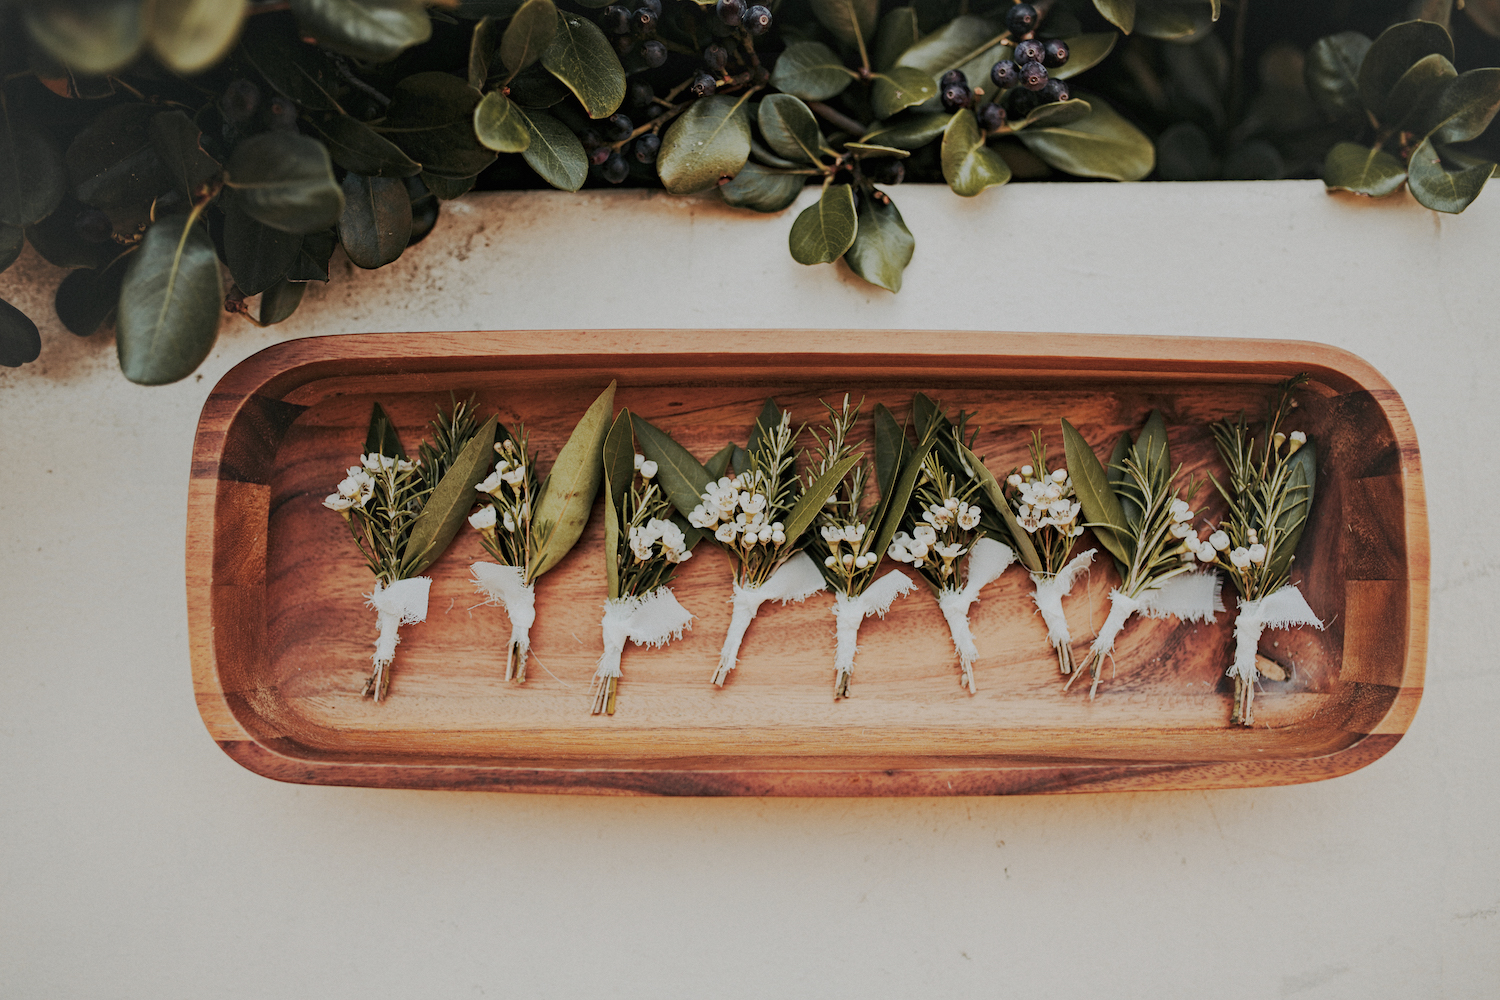 Rosemary boutonnieres by San Diego wedding florist, Compass Floral.